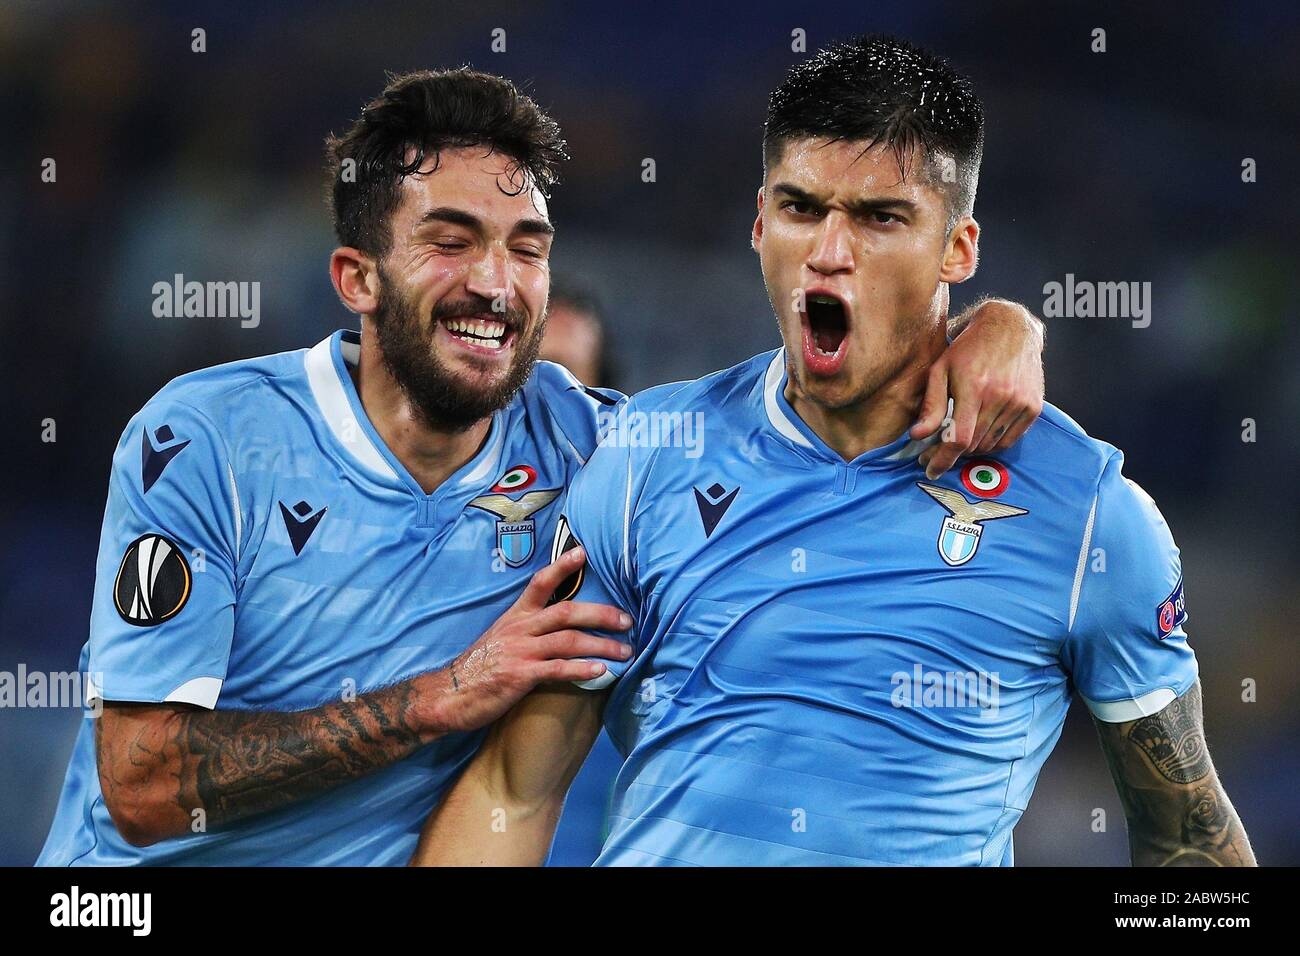 Joaquin Correa of Lazio celebrates with Danilo Cataldi after scoring 1-0 goal during the UEFA Europa League, Group E football match between SS Lazio and CFR Cluj on November 28, 2019 at Stadio Olimpico in Rome, Italy - Photo Federico Proietti/ESPA-Images Stock Photo